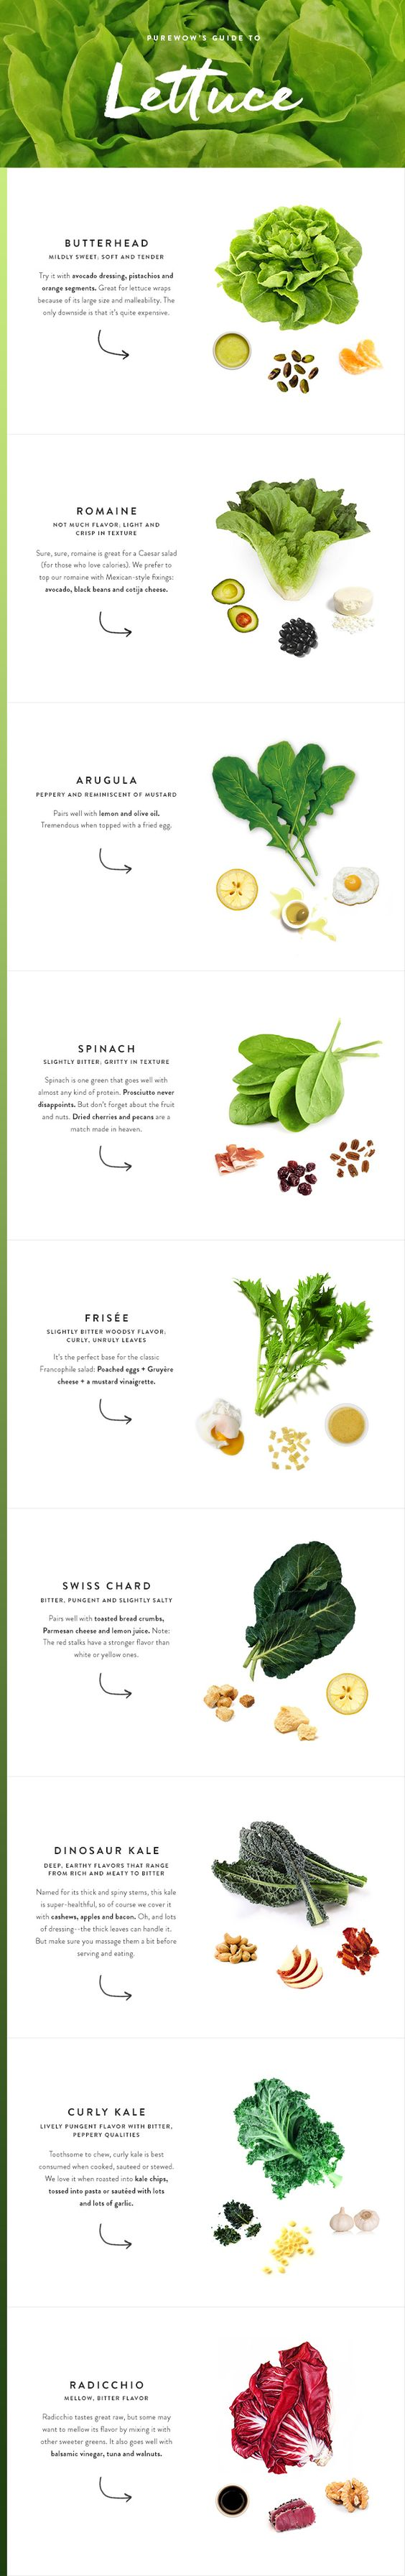 Here is everything you ever wanted to know about lettuce. 9 different types, infinite salad combinations.